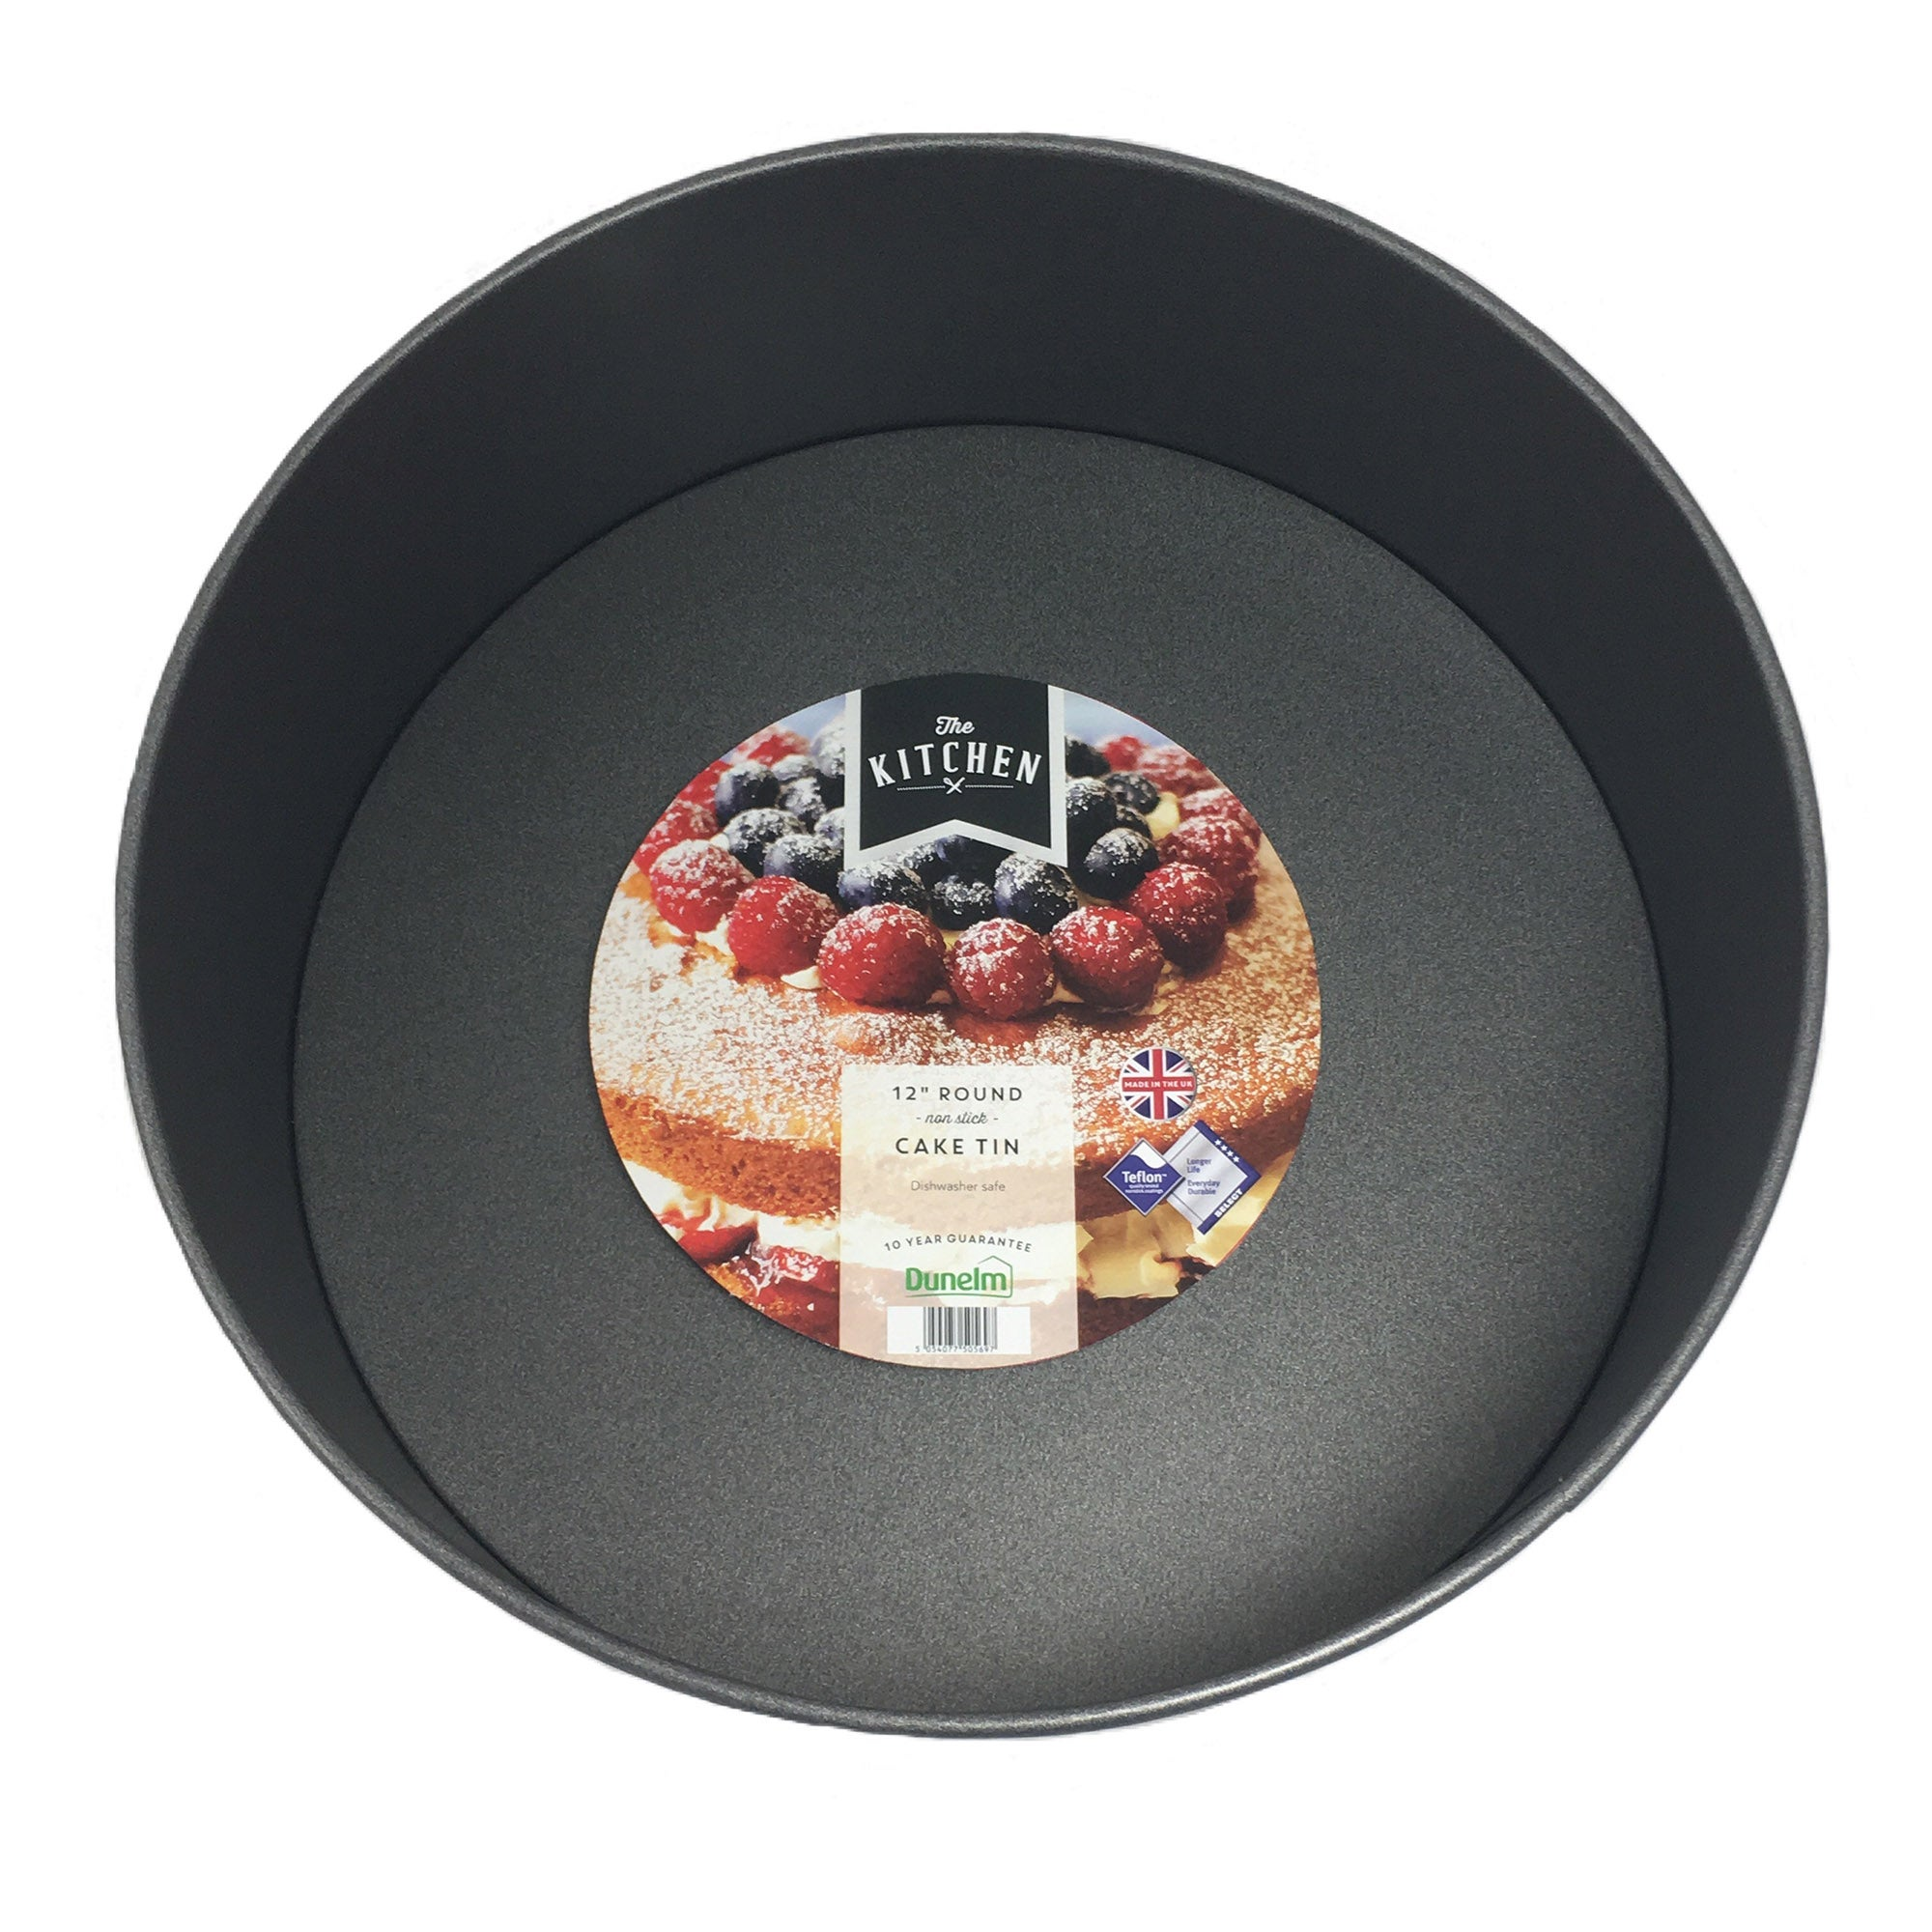 "Image of 12"" Round Cake Tn Black"